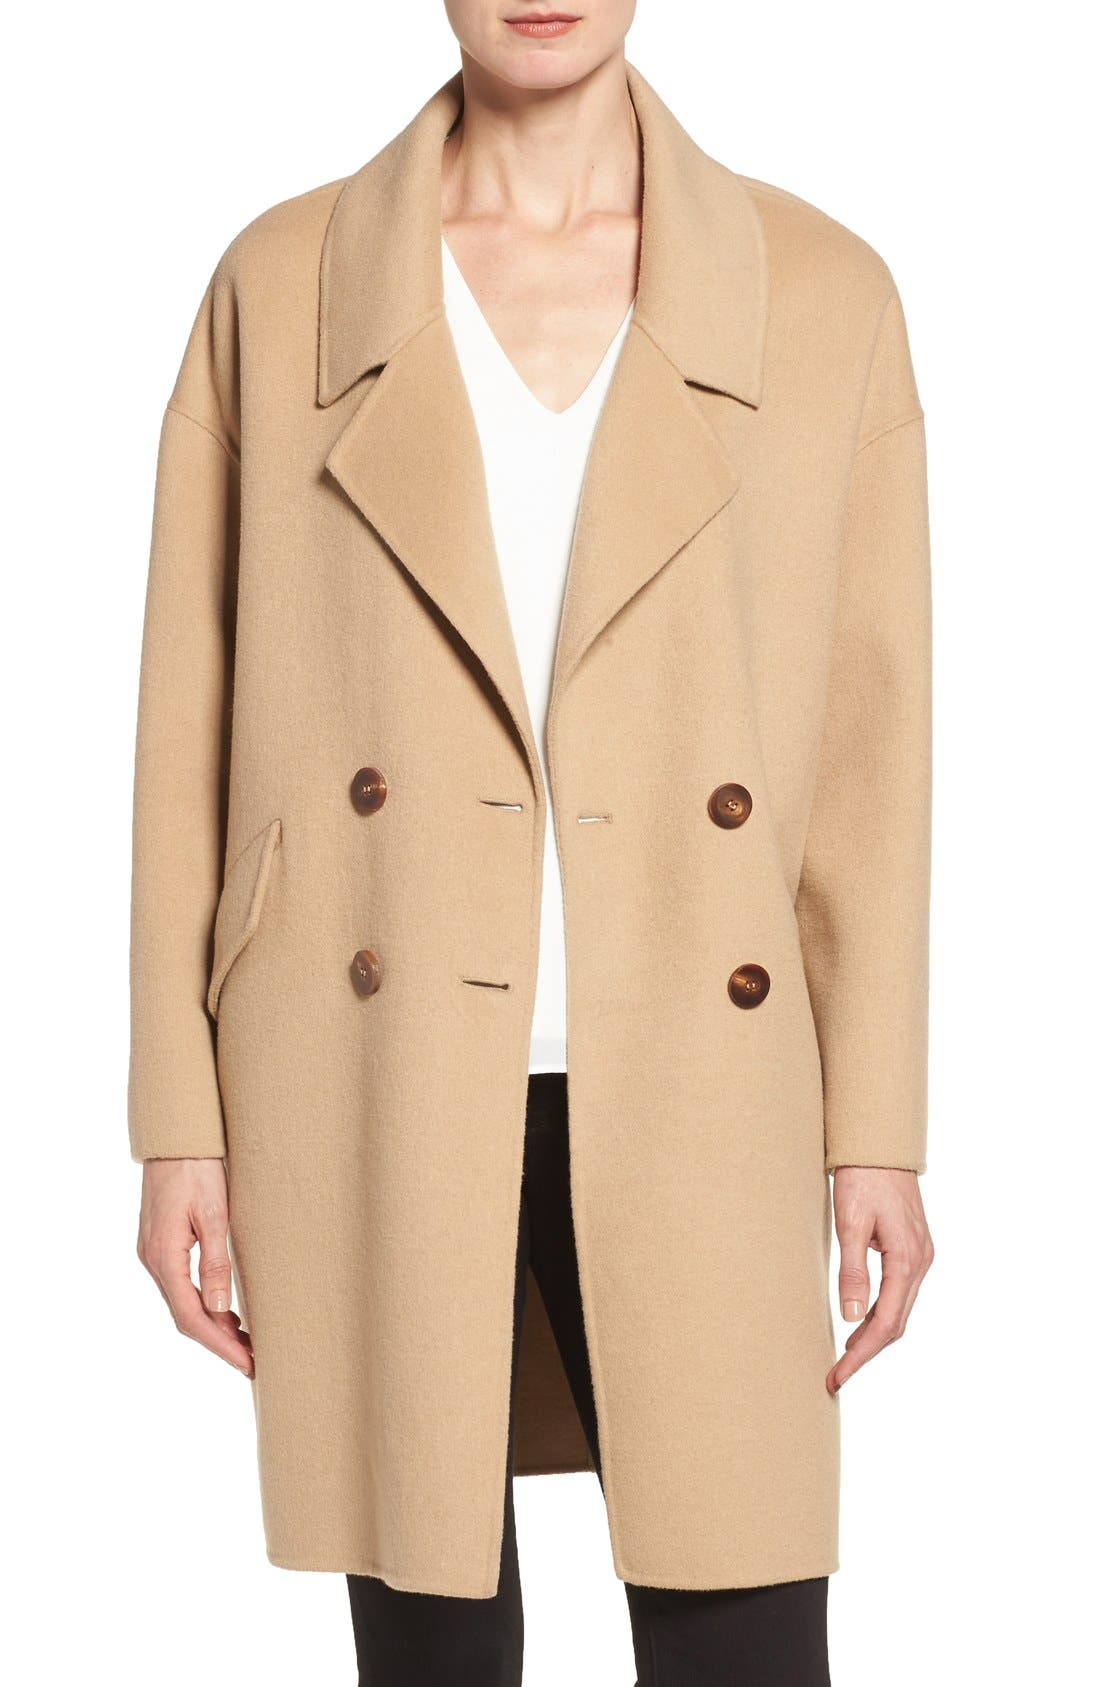 Alternate Image 1 Selected - Diane von Furstenberg Double Face Double Breasted Walking Coat